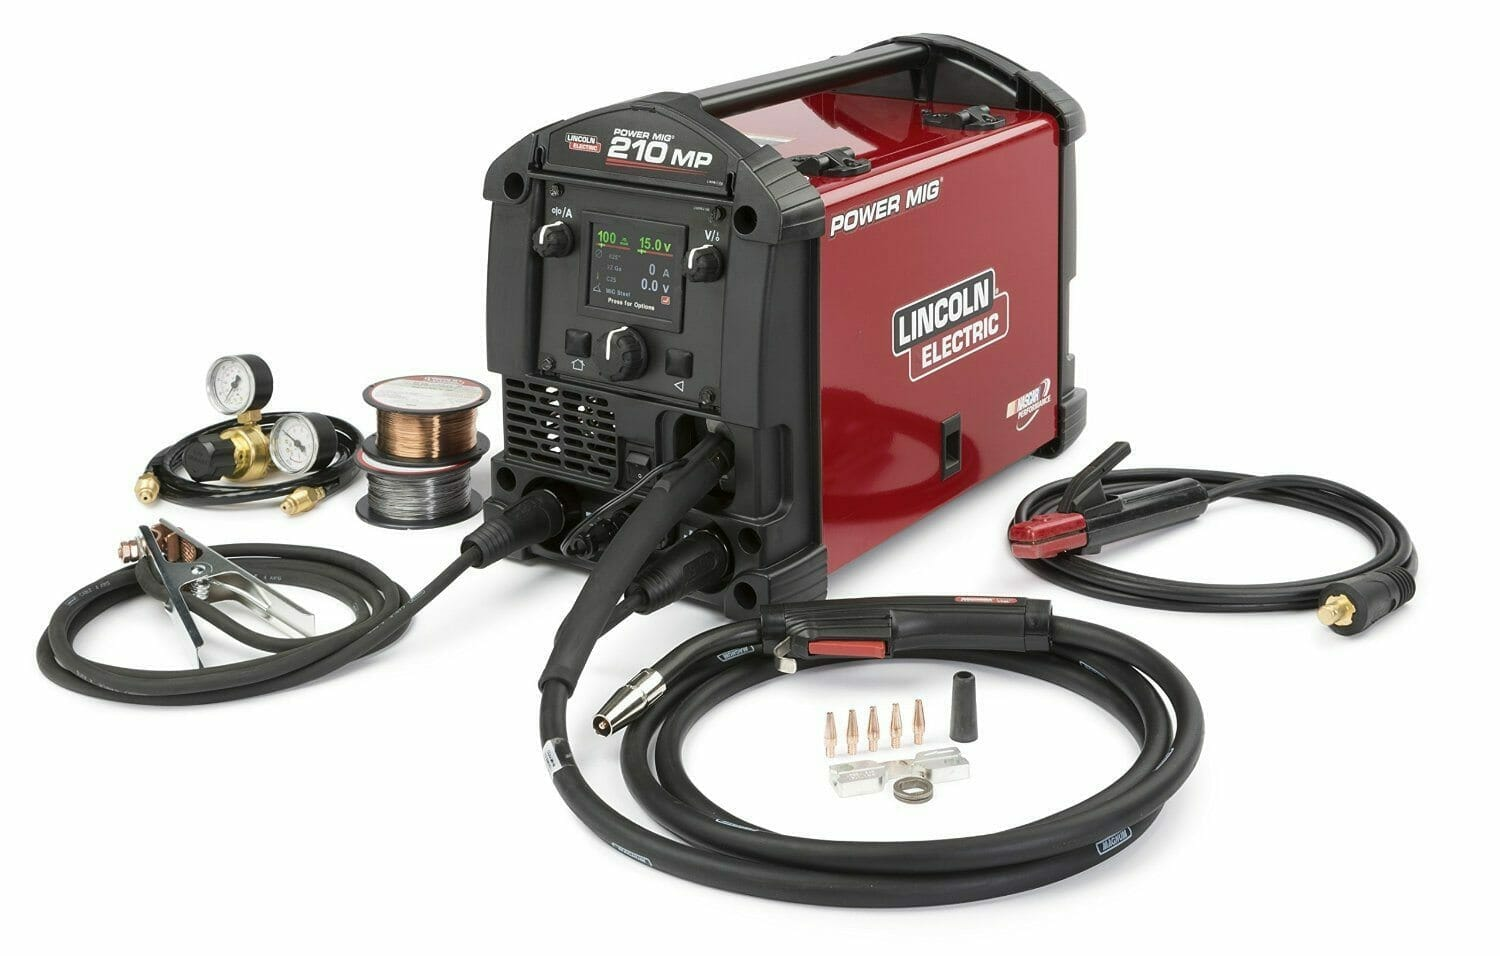 is the Lincoln Power Mig 210 a good welder?